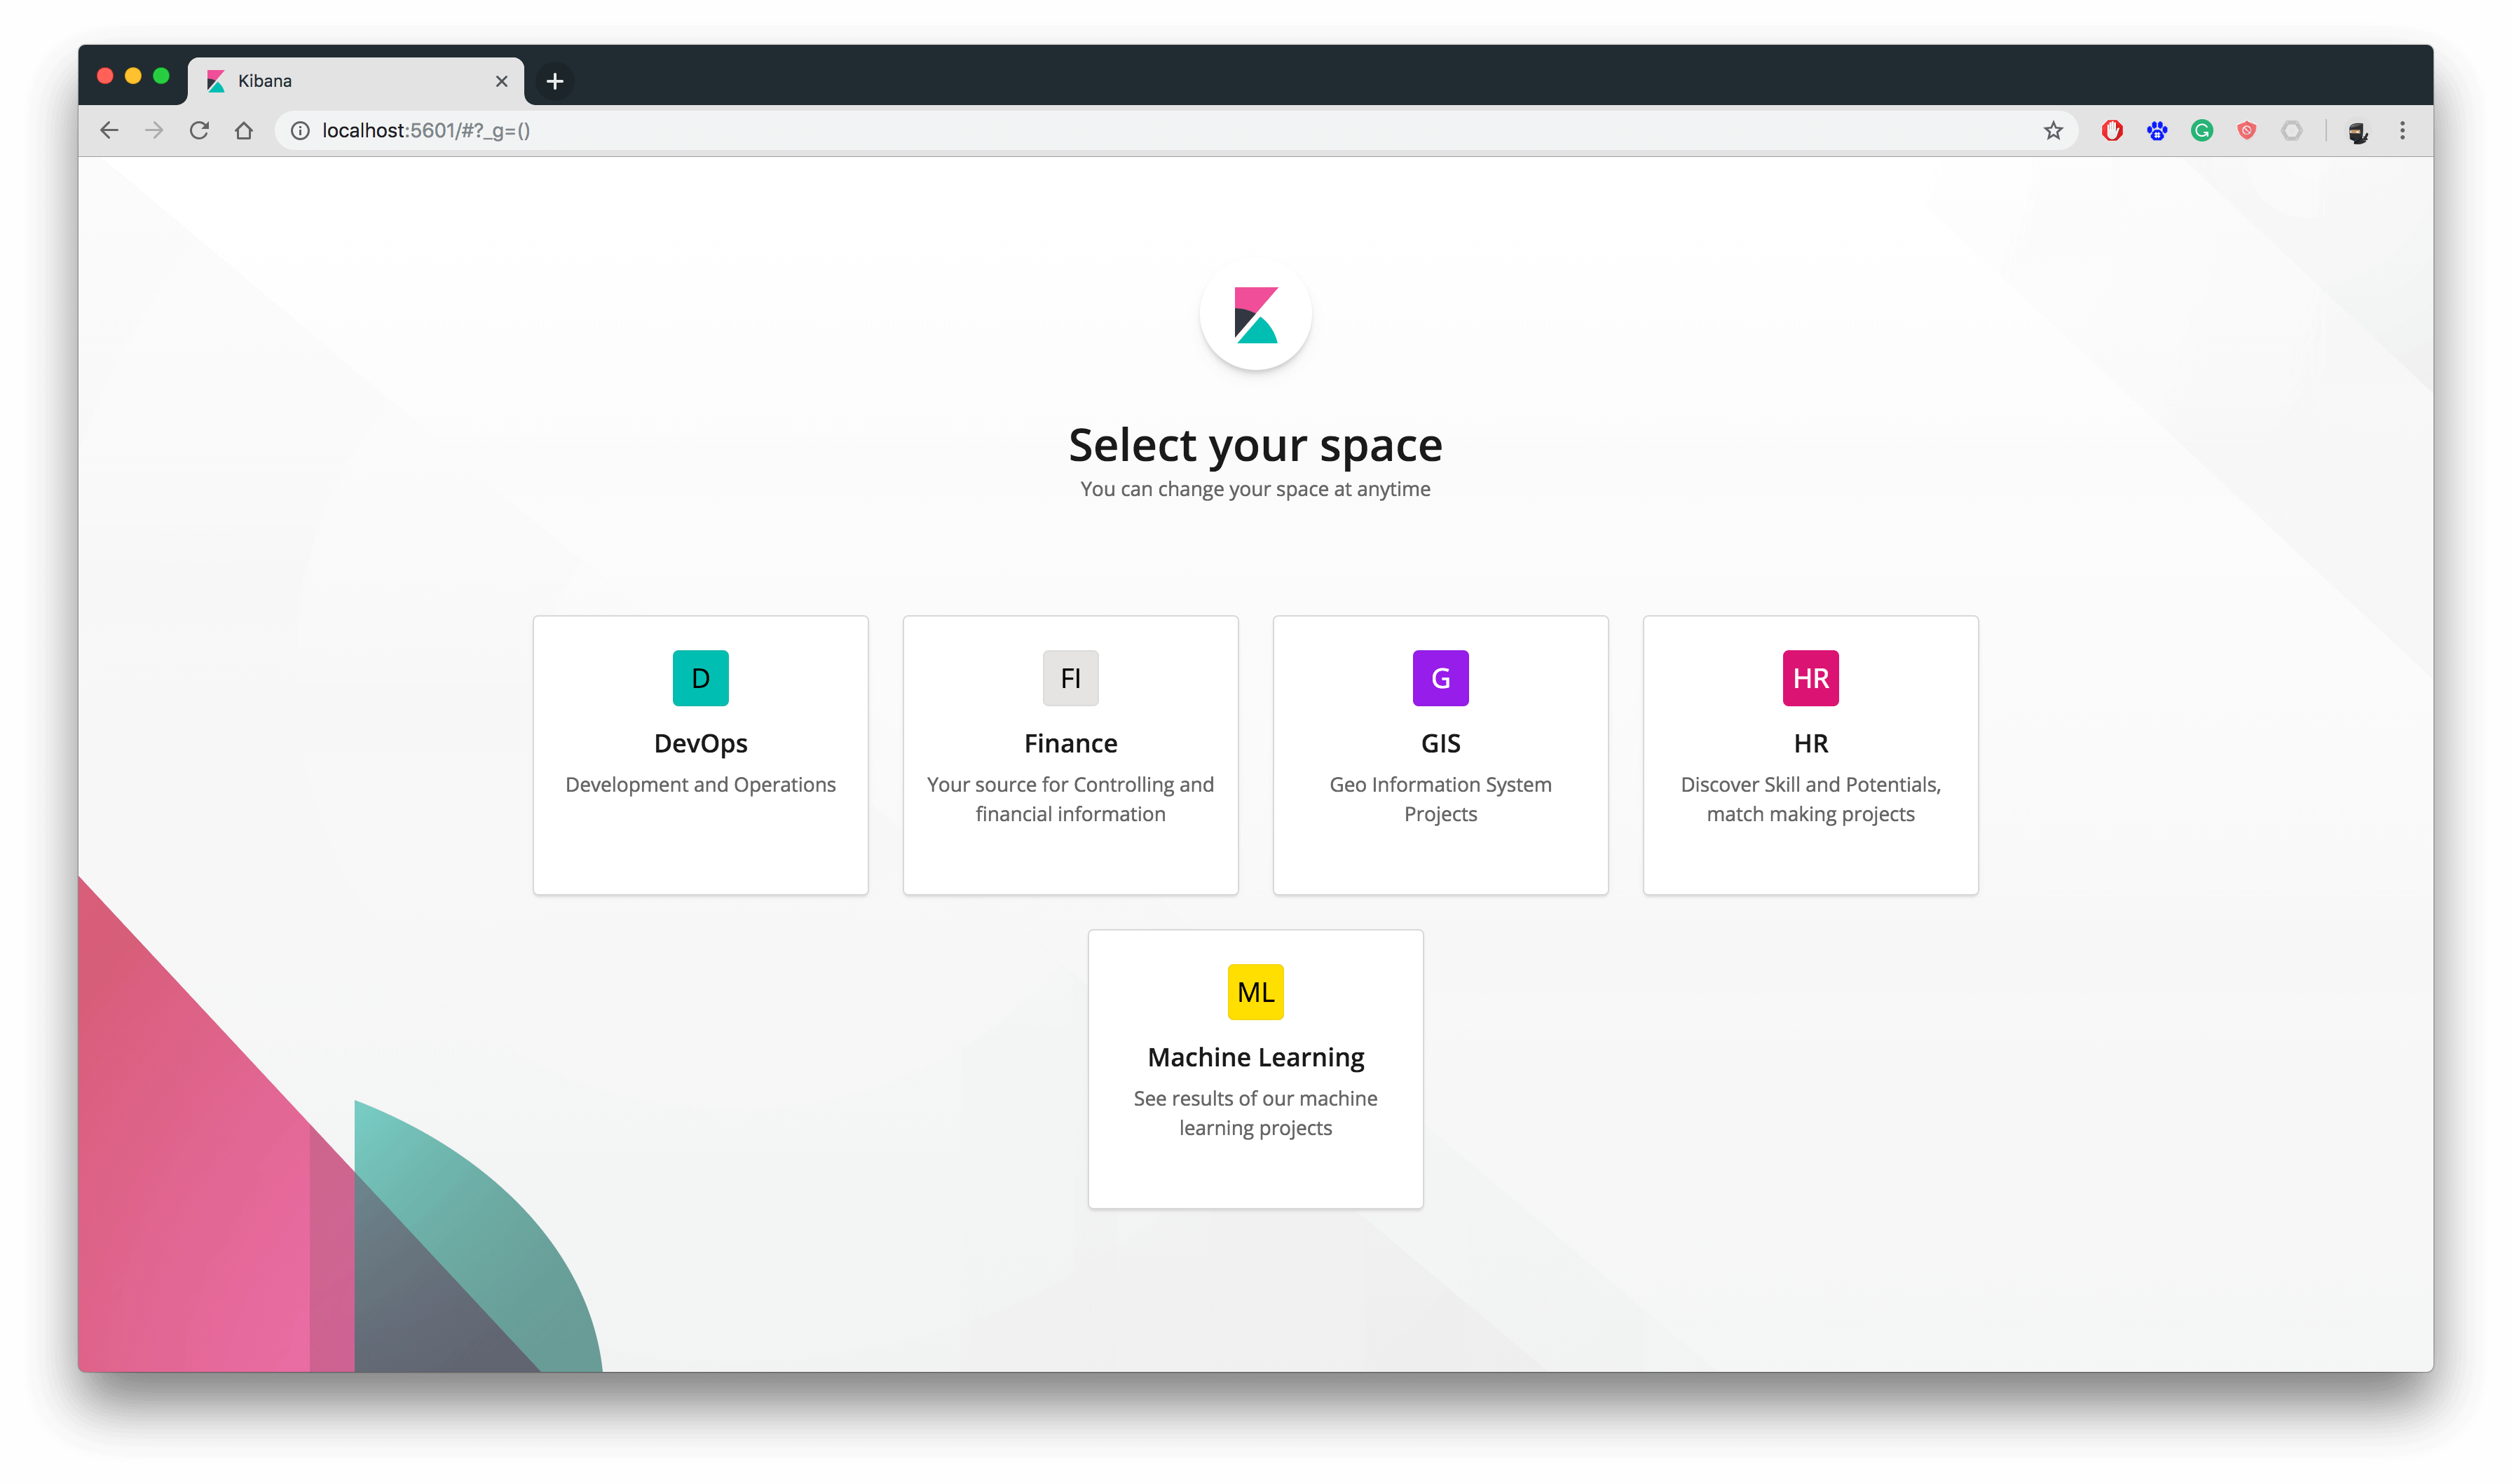 Kibana Workspaces